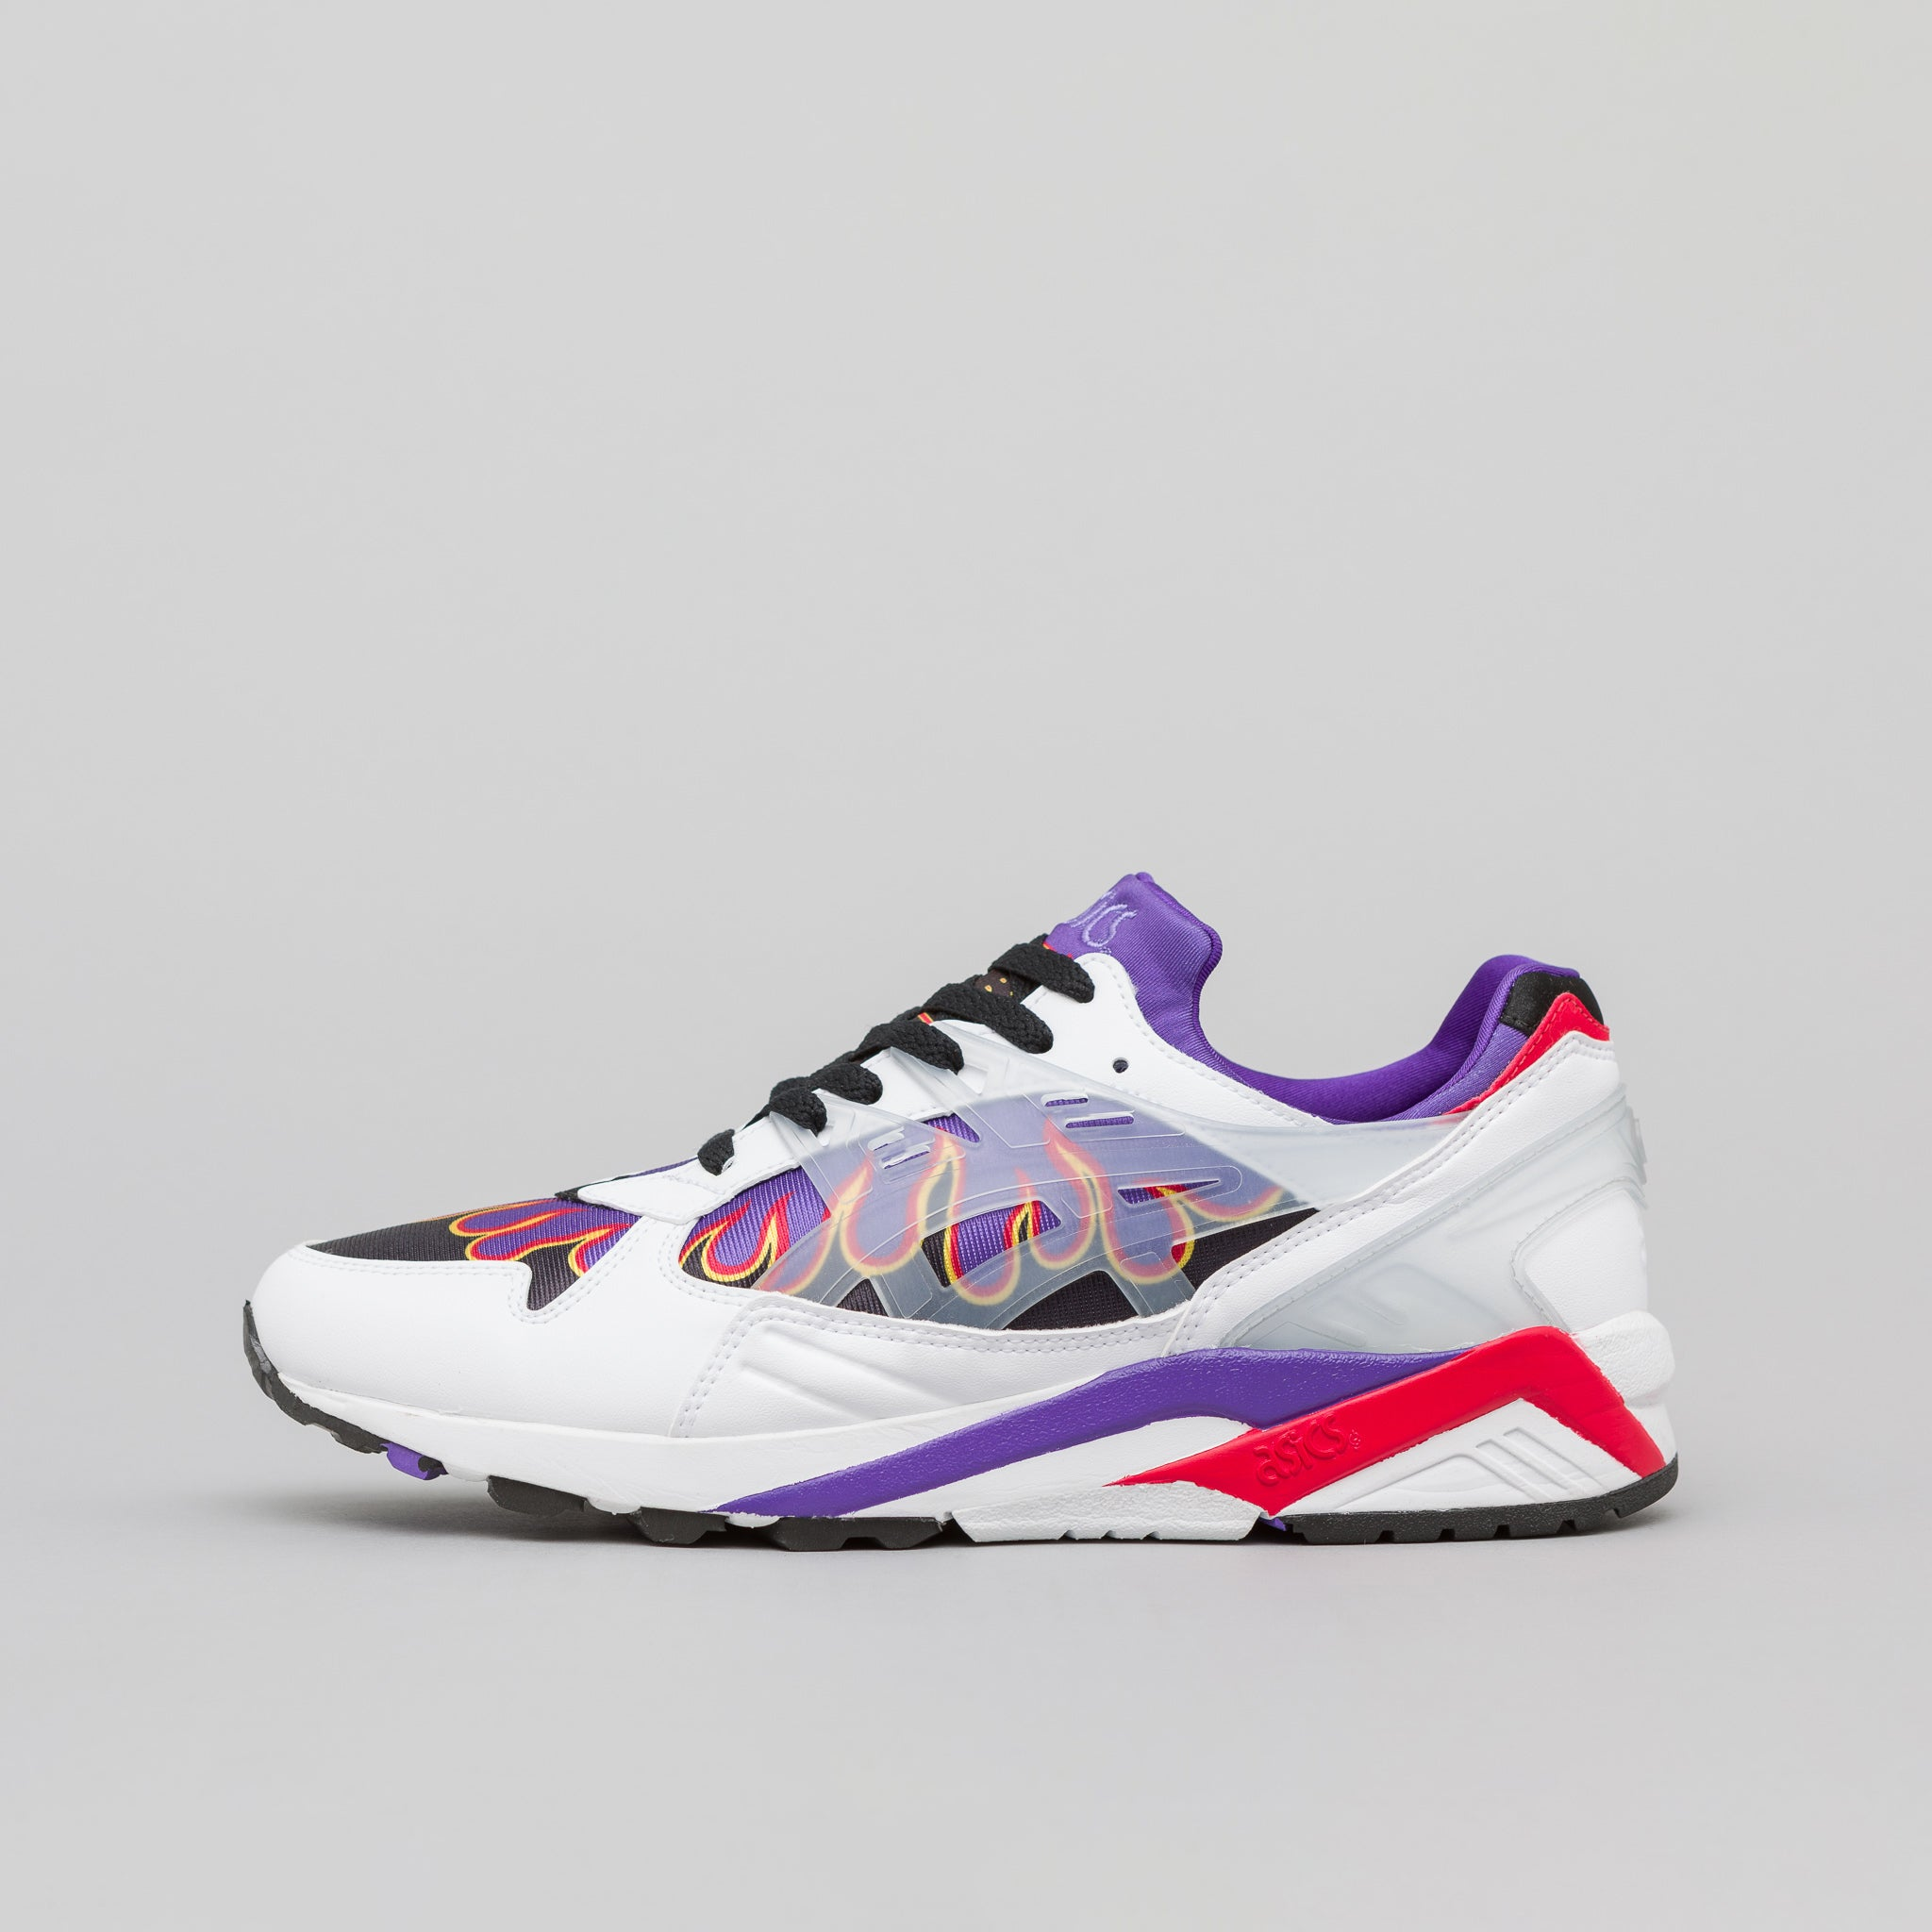 x Sneakerwolf Gel-Kayano Trainer in White/Clear